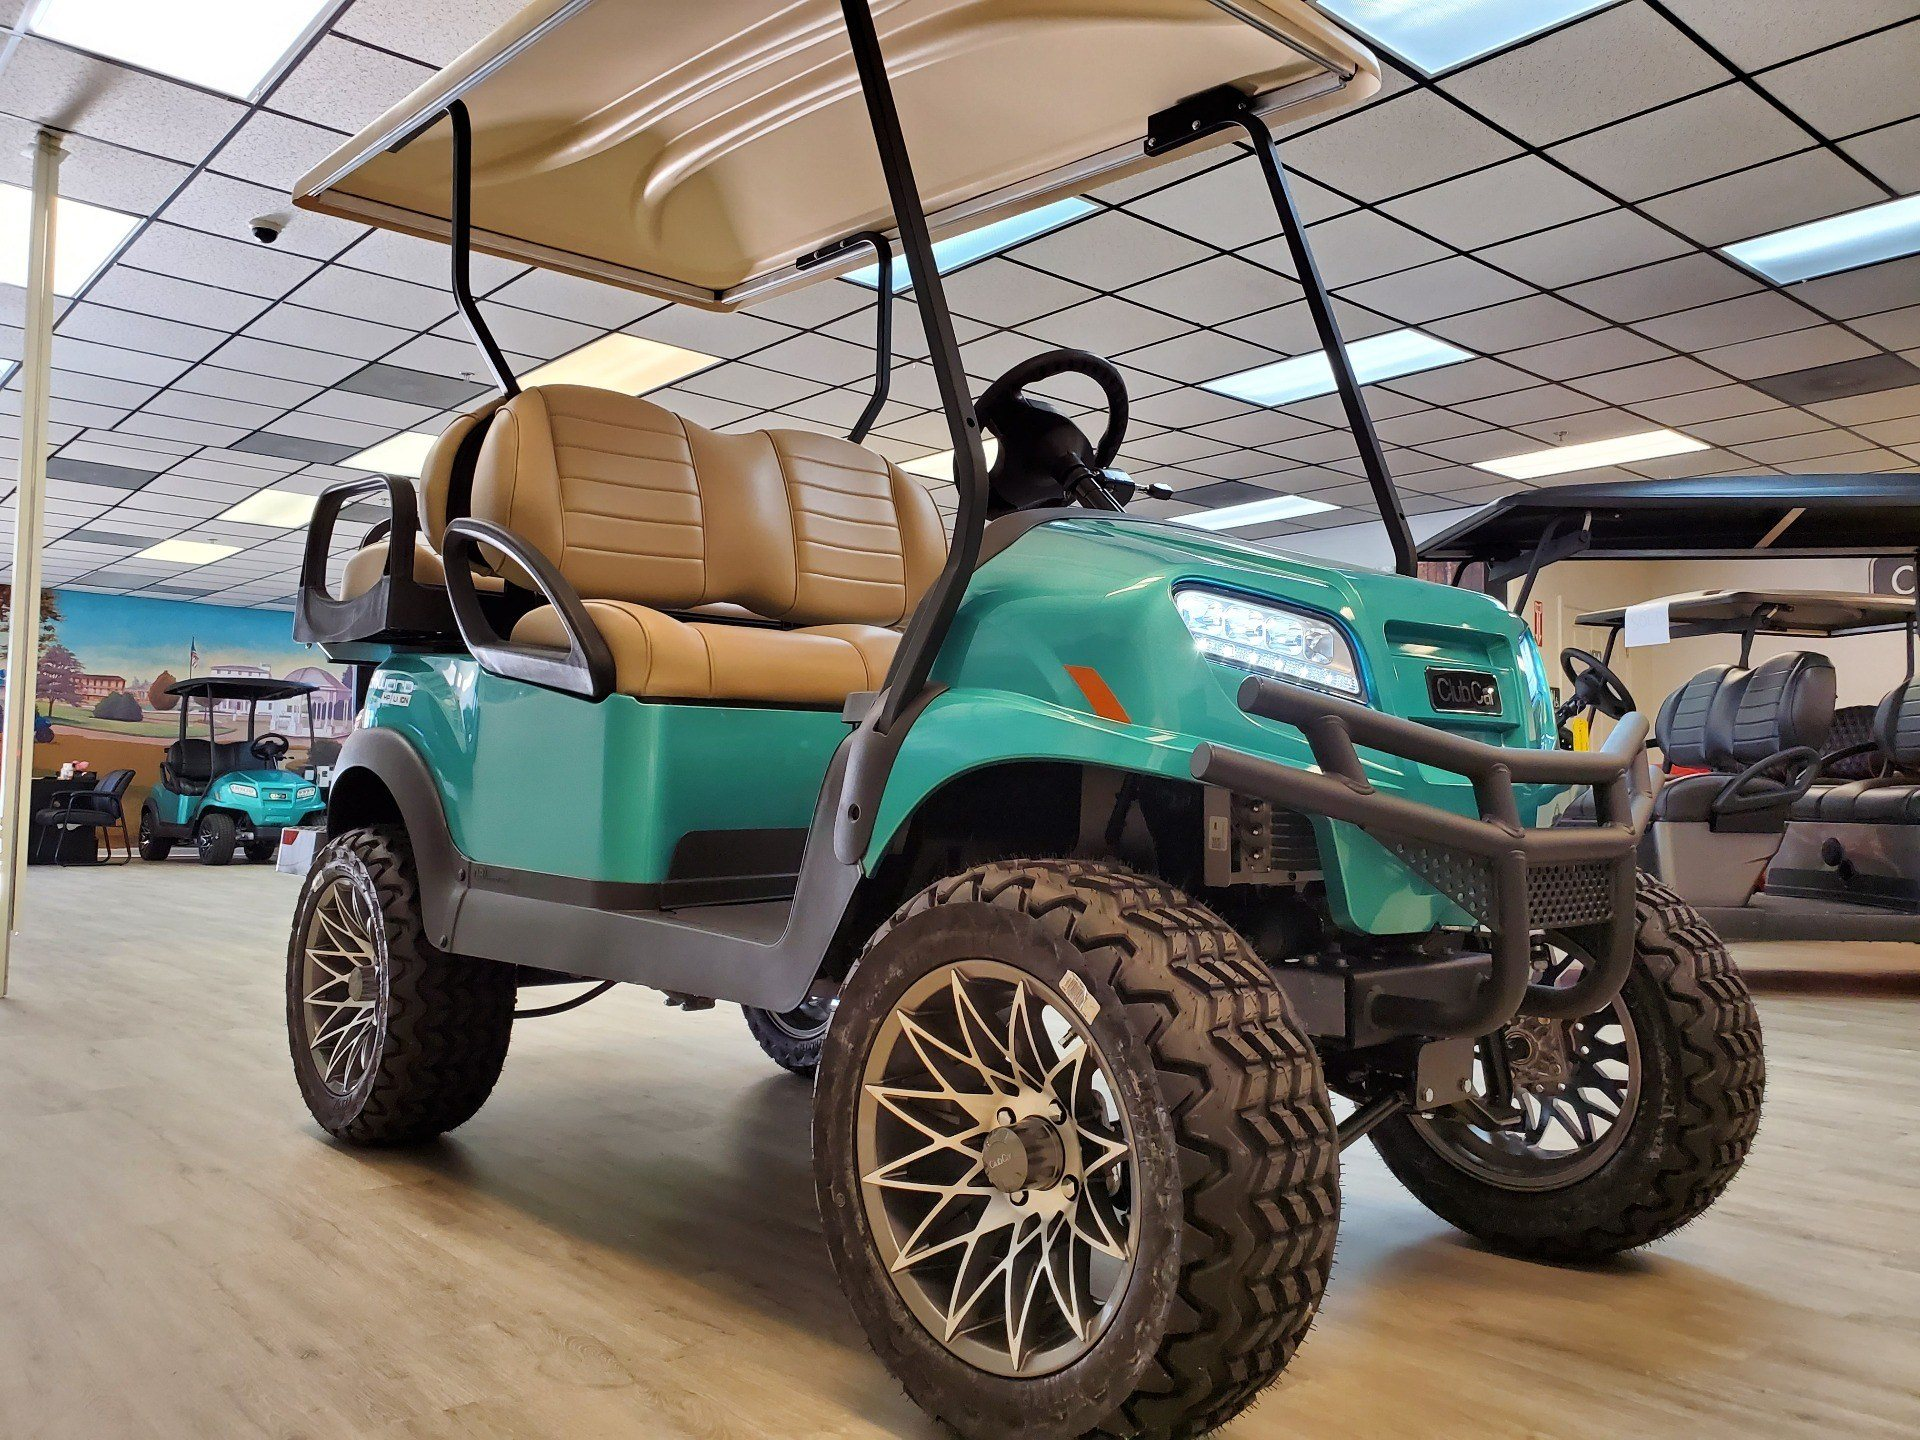 2021 Club Car Onward Lifted 4 Passenger HP Lithium Ion in Canton, Georgia - Photo 3